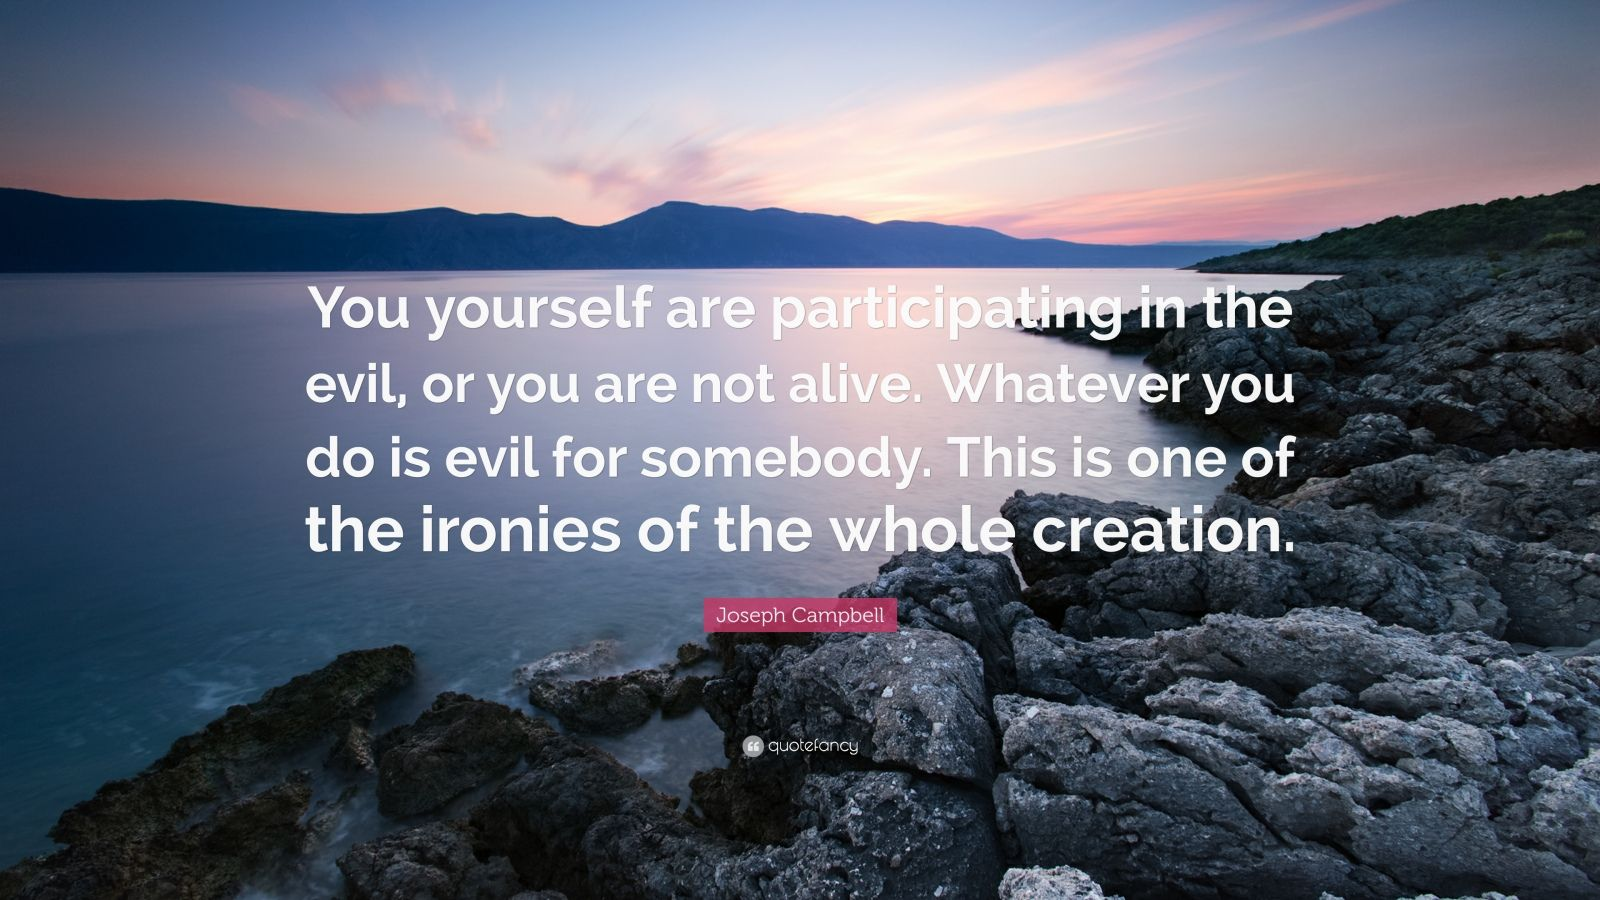 """Joseph Campbell Quote: """"You yourself are participating in the evil, or you are not alive. Whatever you do is evil for somebody. This is one of the ironies of the whole creation."""""""